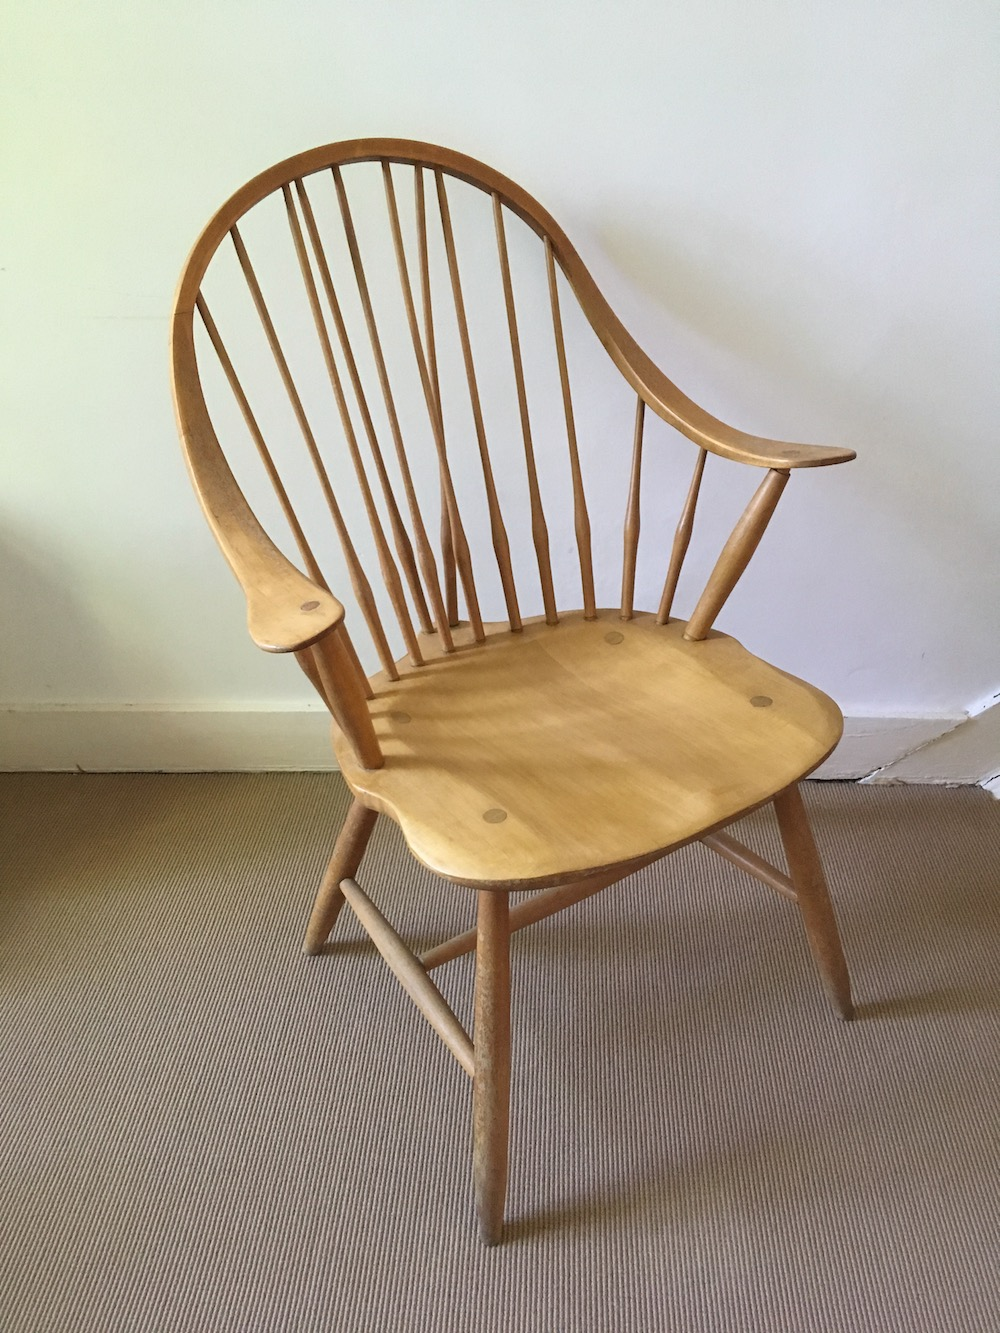 wooden chair, lounge chair, vintage chair, shaker furniture, shaker style, shaker